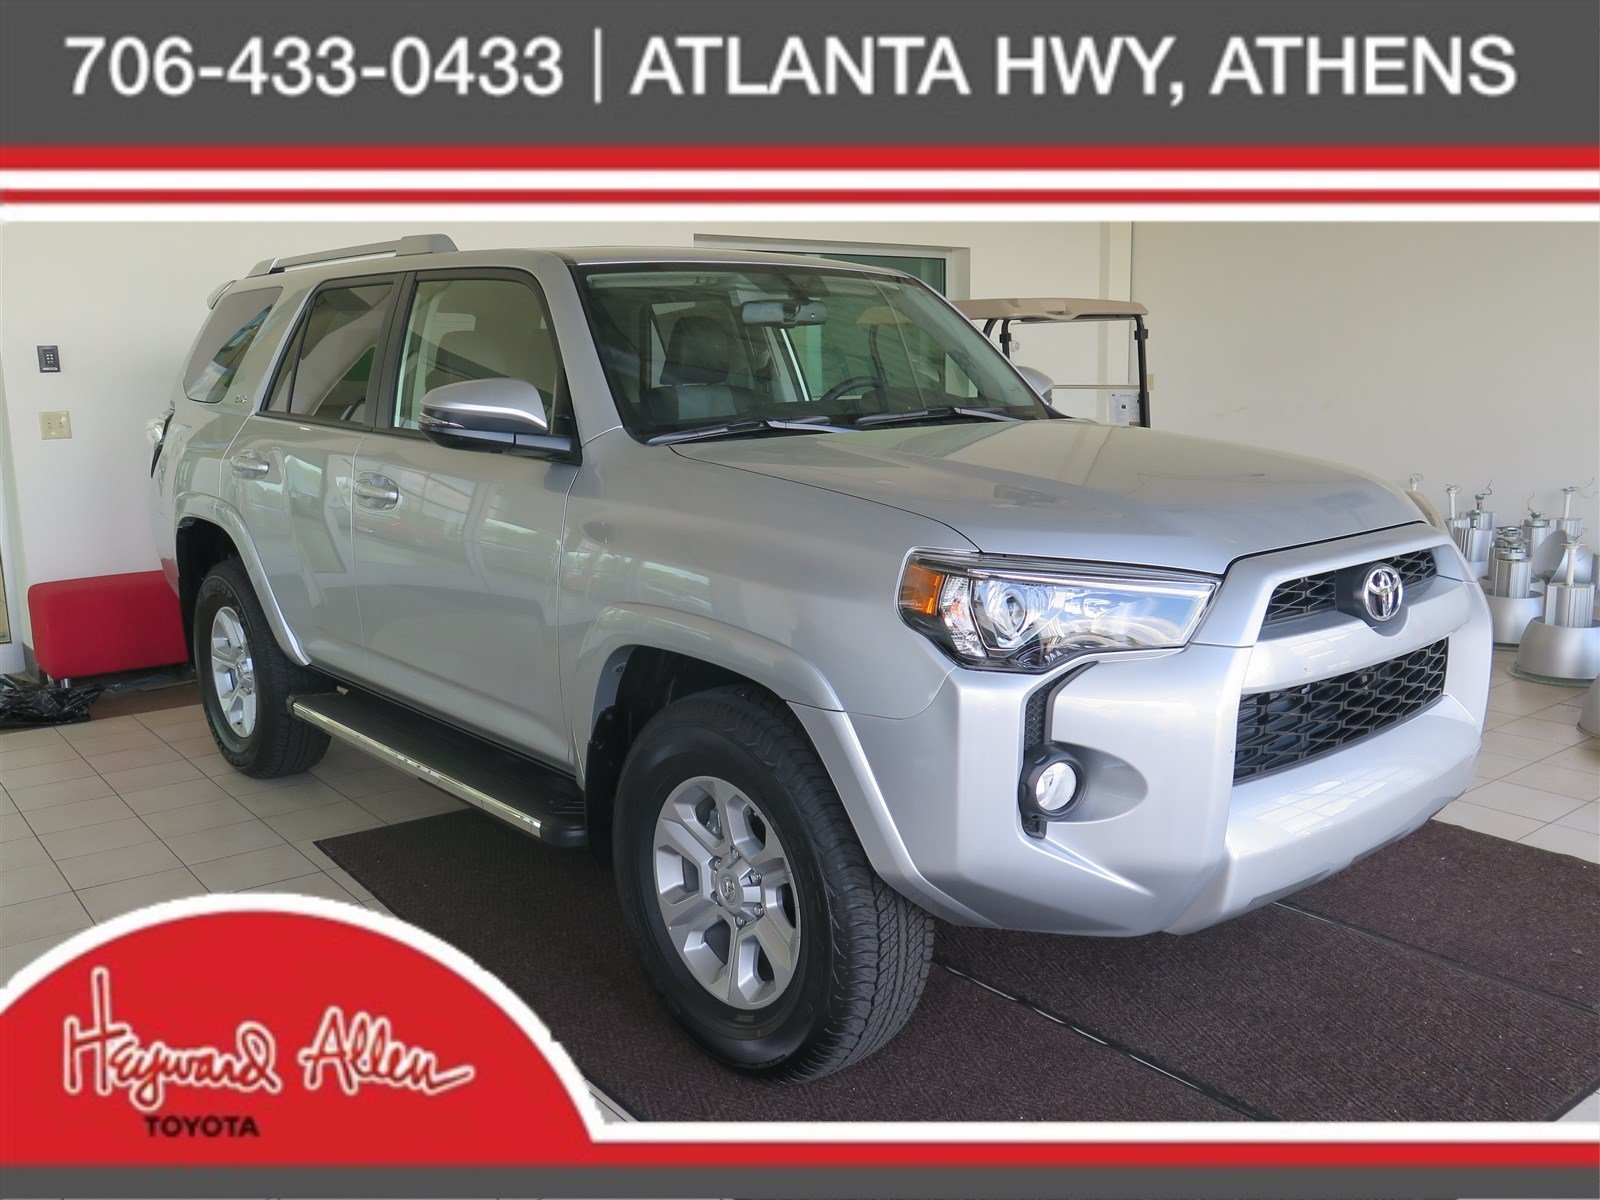 28cb483237c523180faccb9dcef6e04a Great Description About Used toyota 4runner for Sale